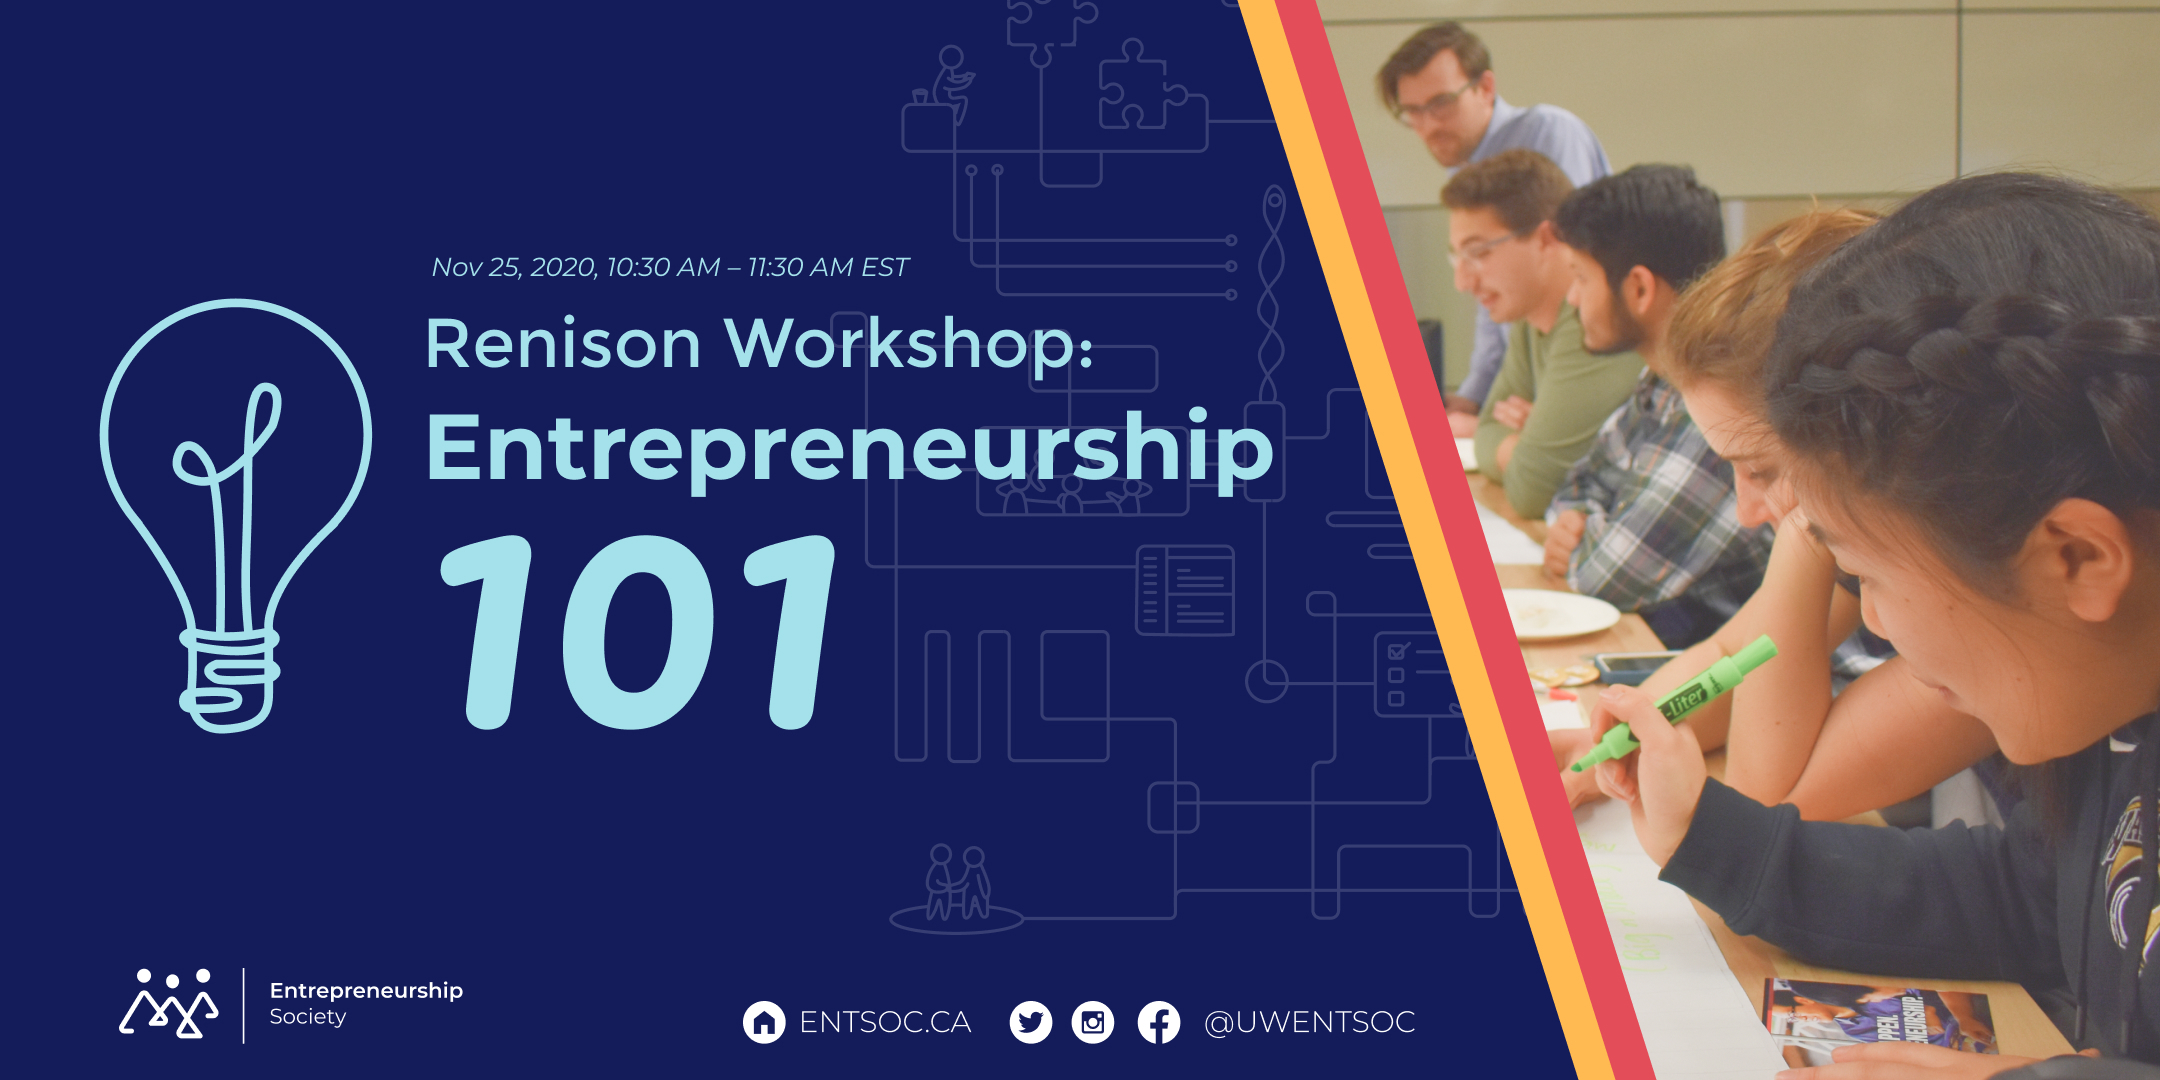 Renison Workshop: Entrepreneurship 101